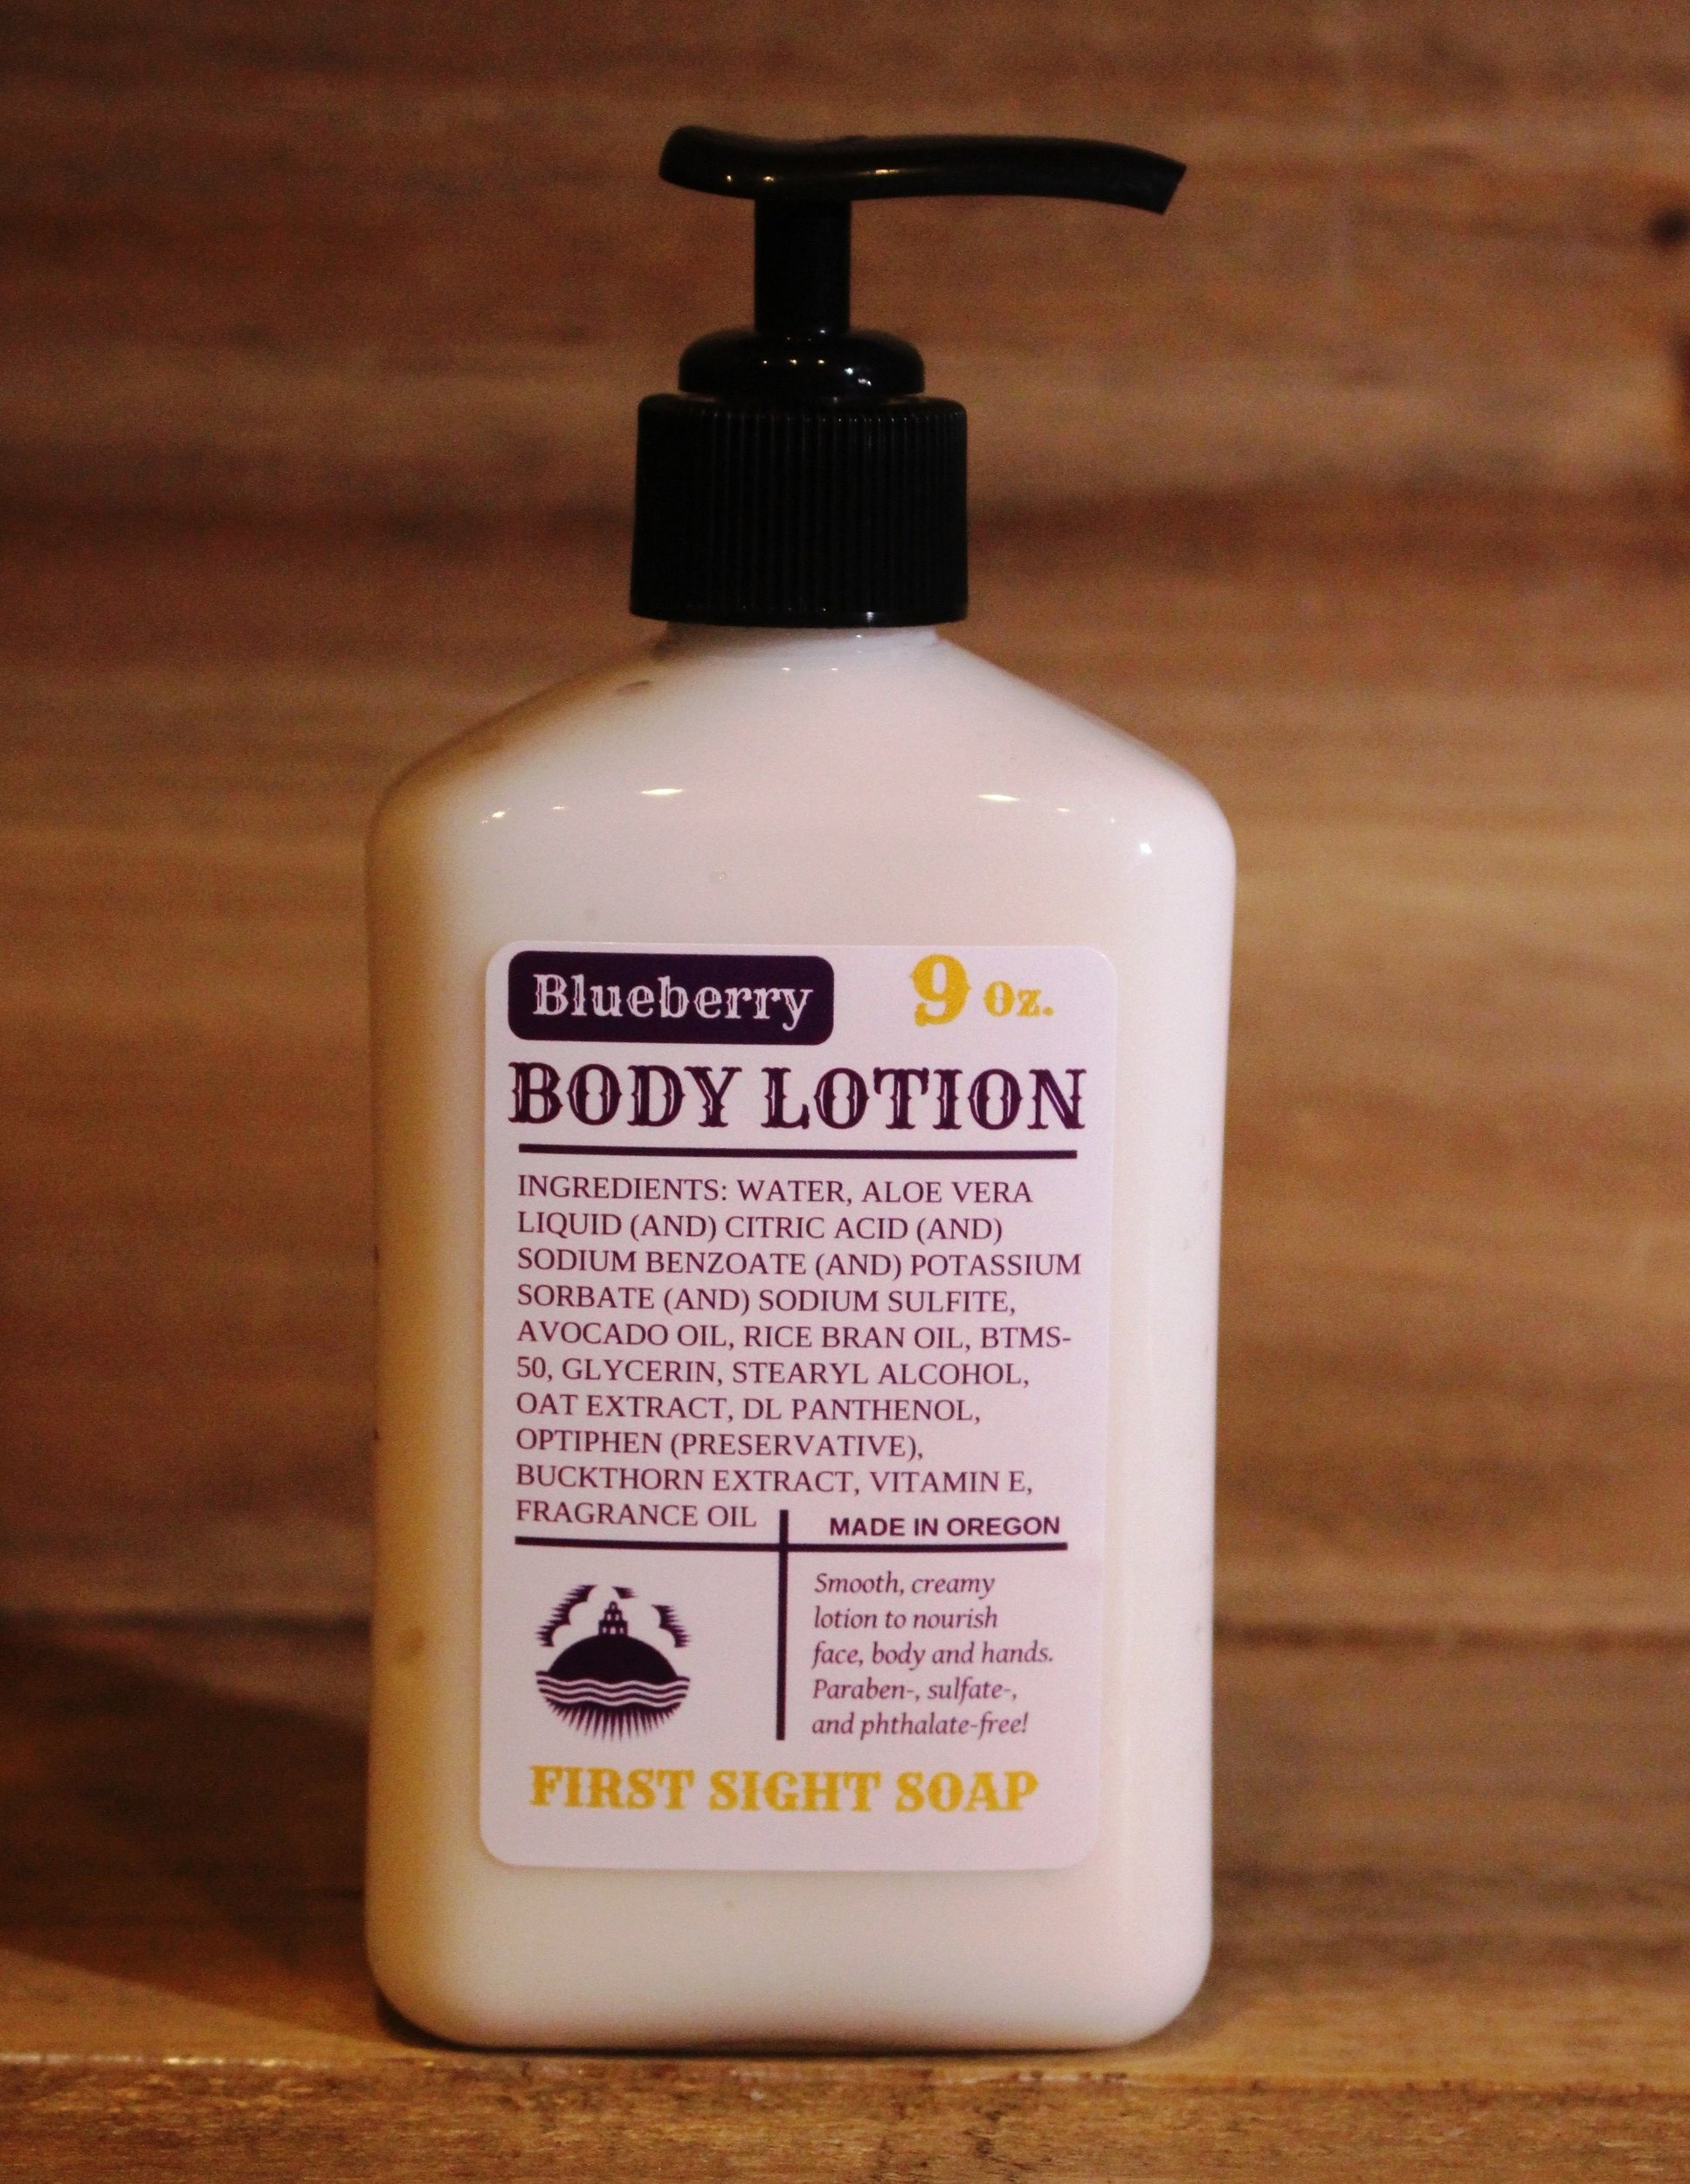 Body Lotion — First Sight Soap